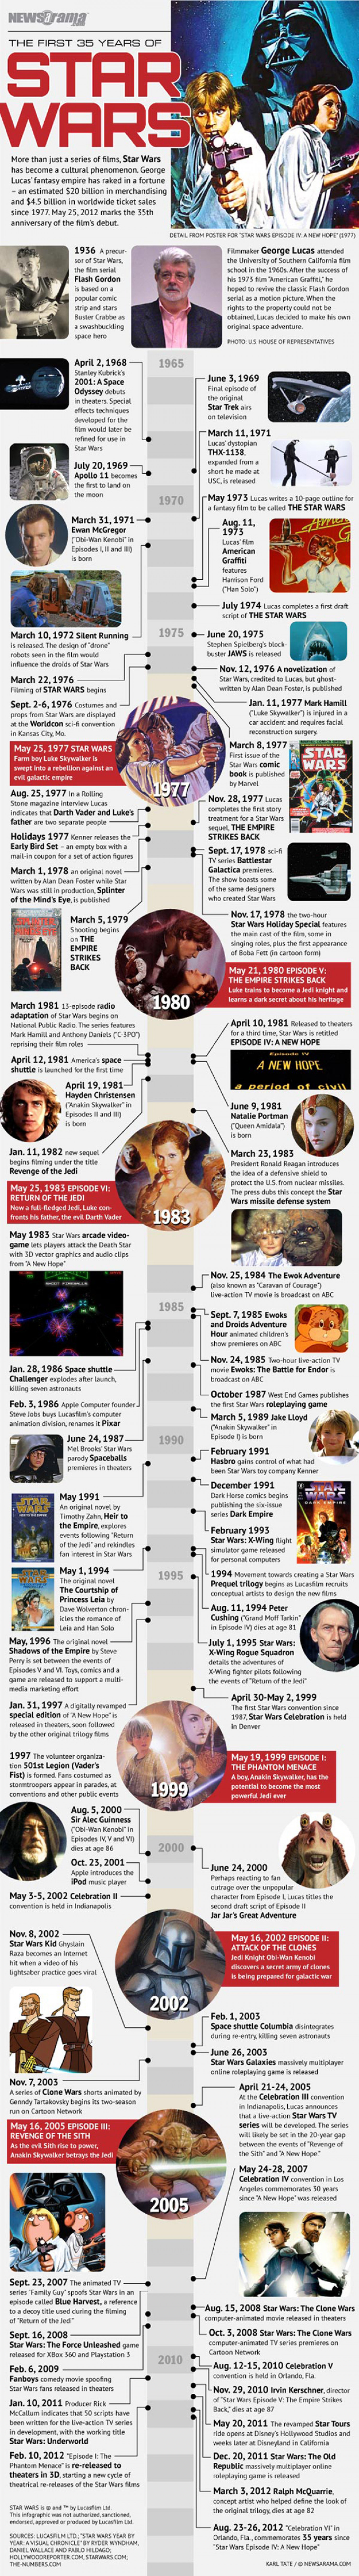 35 Years of Star Wars Infographic